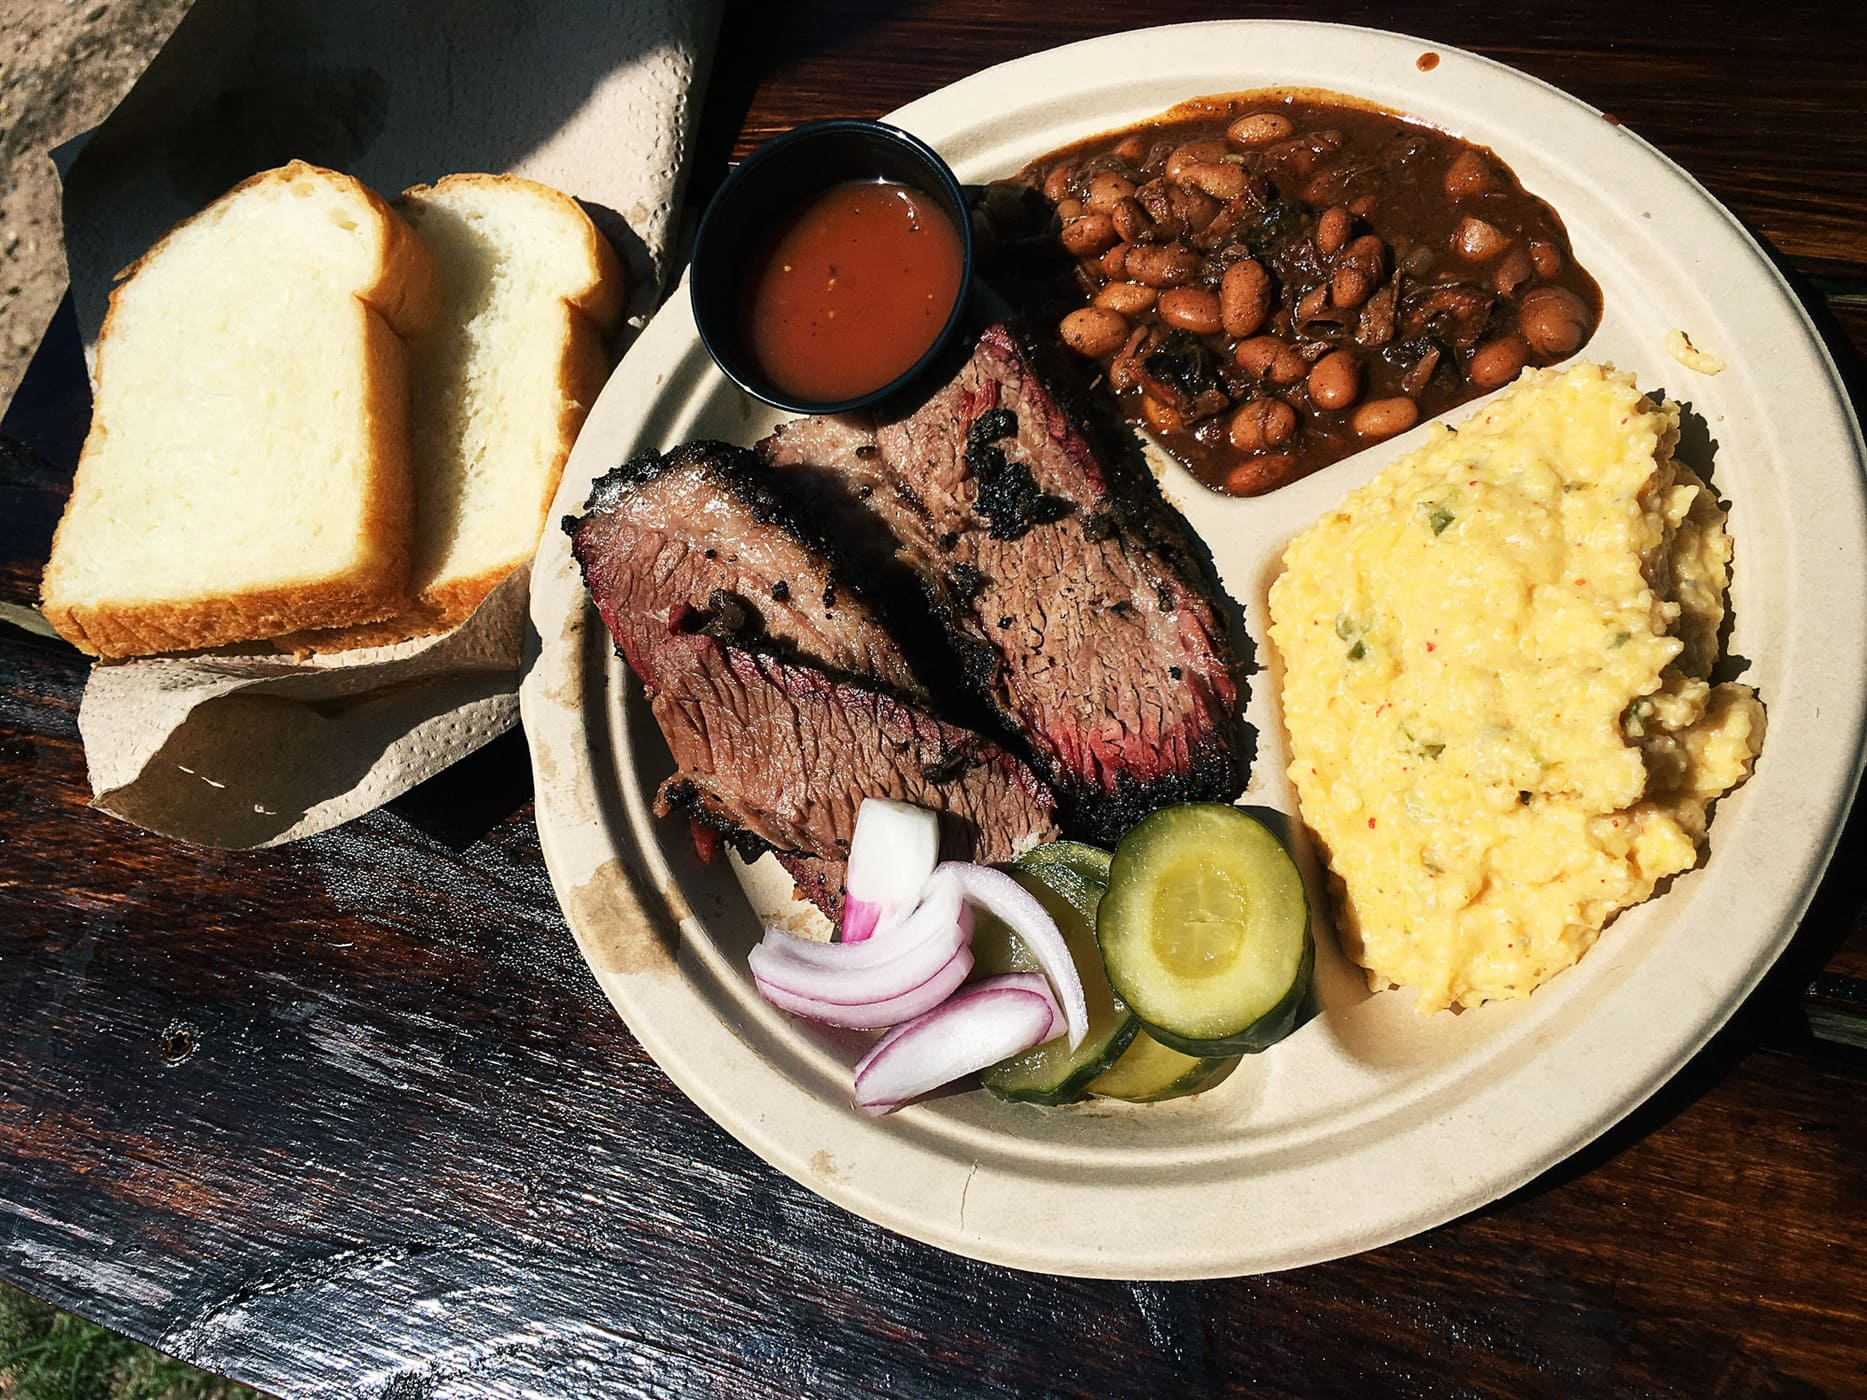 Brisket plate with jalapeno cheese grits and campfire chili beans at Micklethwait Craft Meats food truck in Austin, Texas.